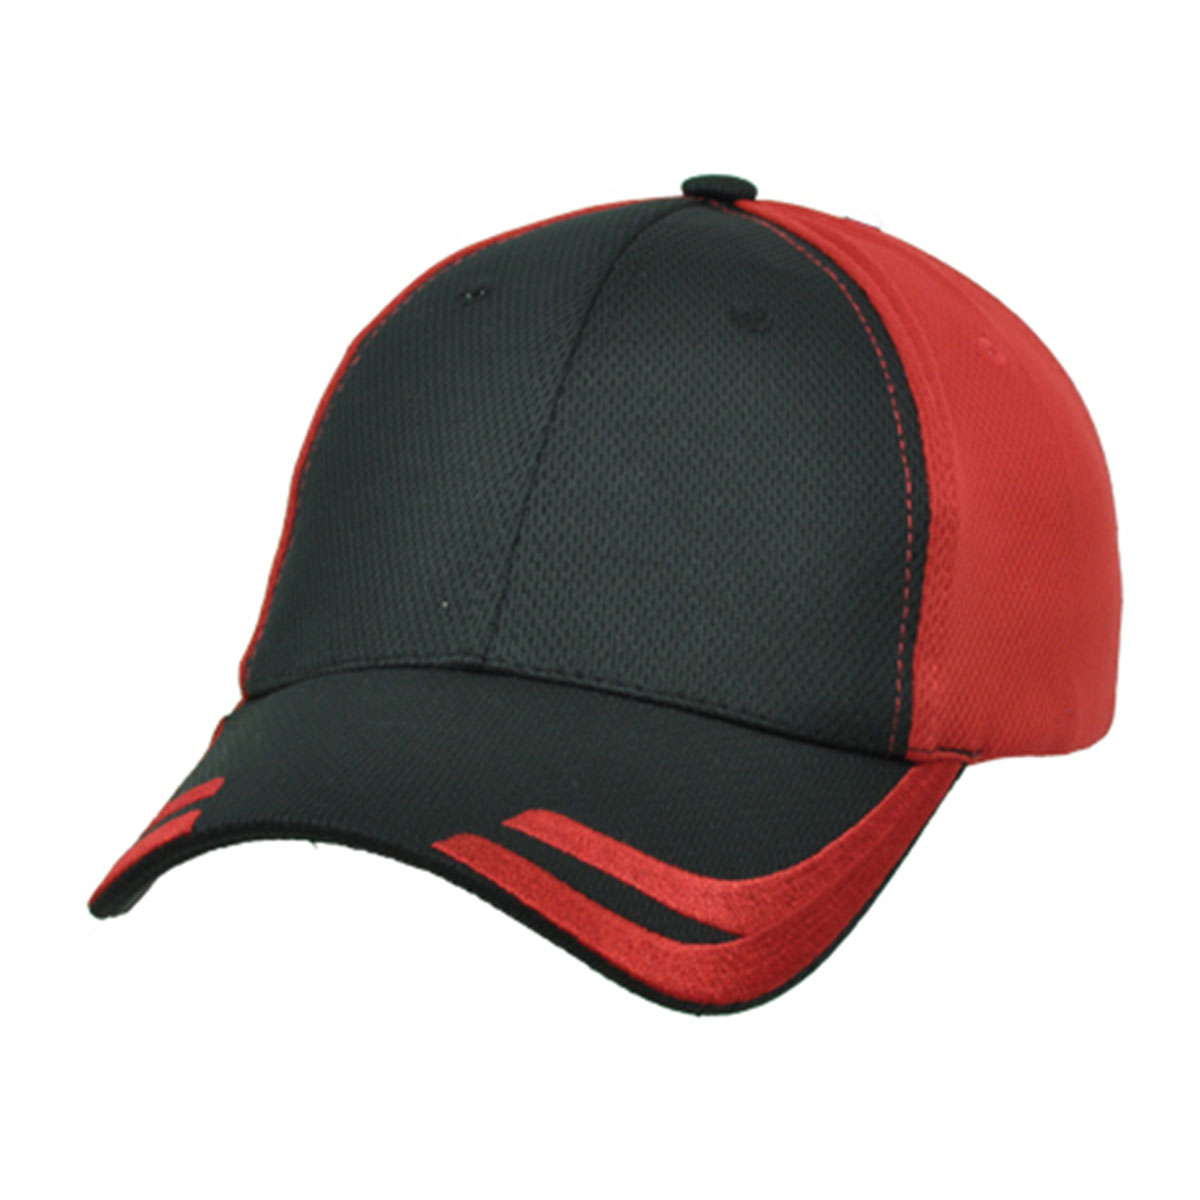 Tiburon Cap-Black / Red